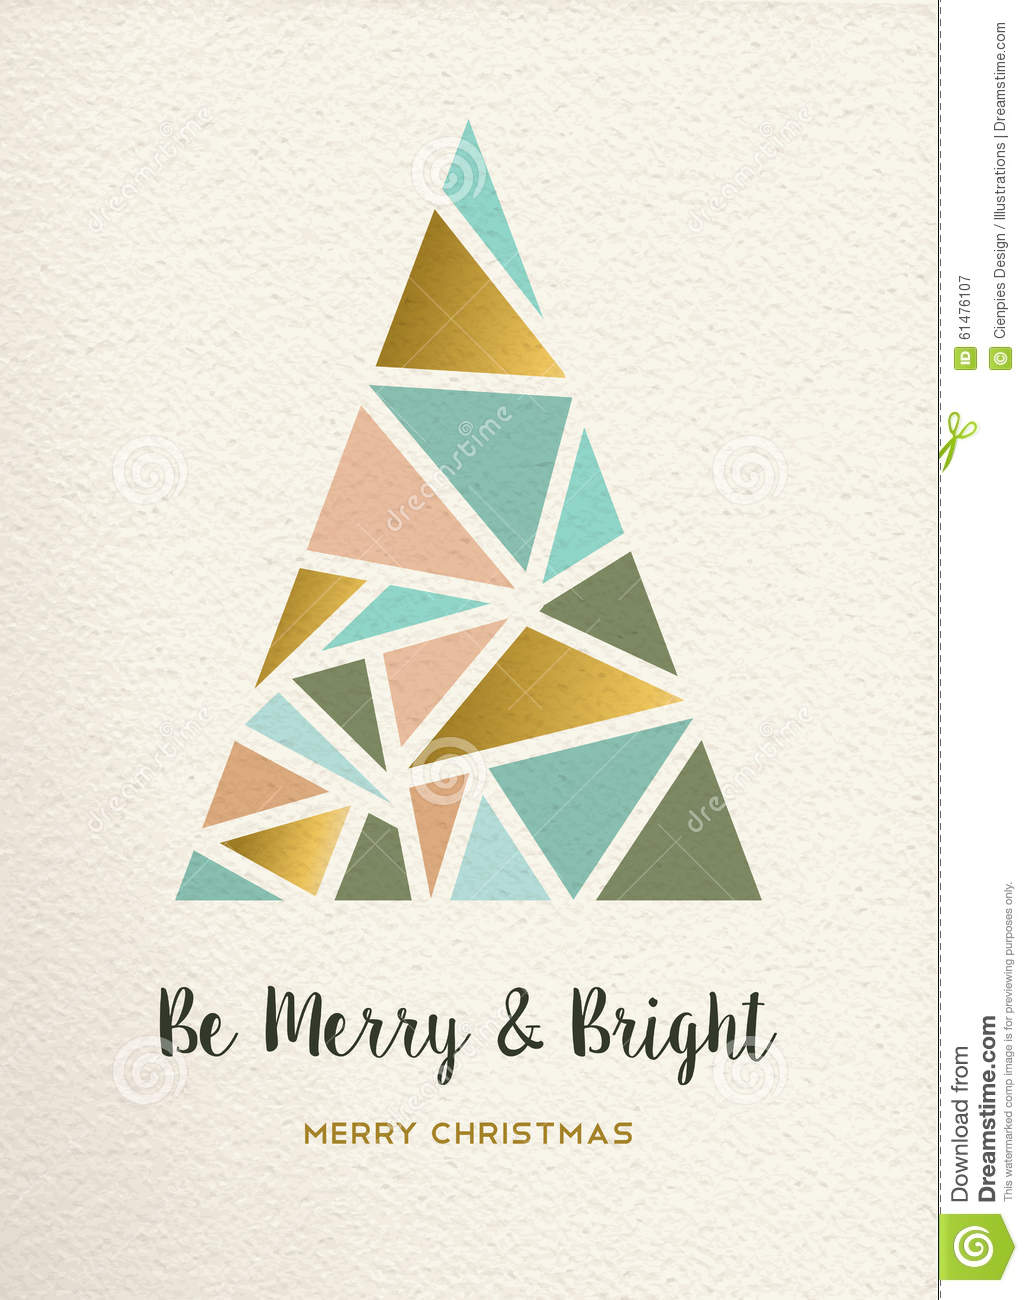 Merry christmas triangle pine tree design in retro geometry style with ...